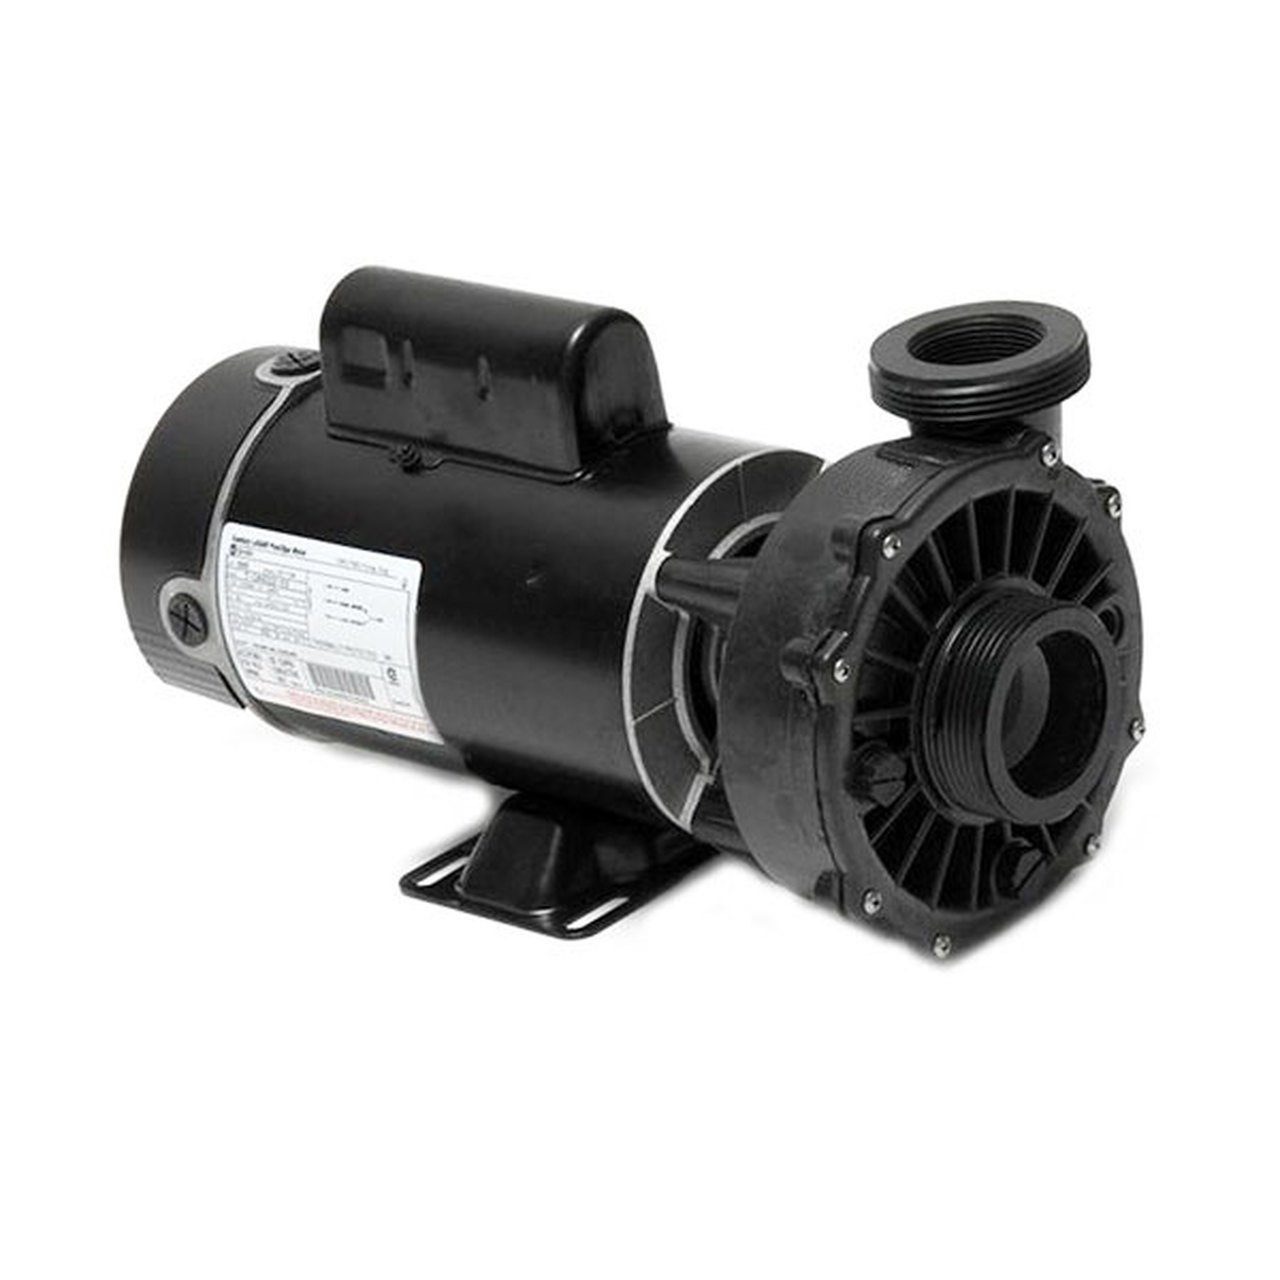 WaterWay Waterway hot tub pump Pool Store Canada Waterway Hi-Flo 4.0hp 2 Speed 220v pump - Pool Store Canada